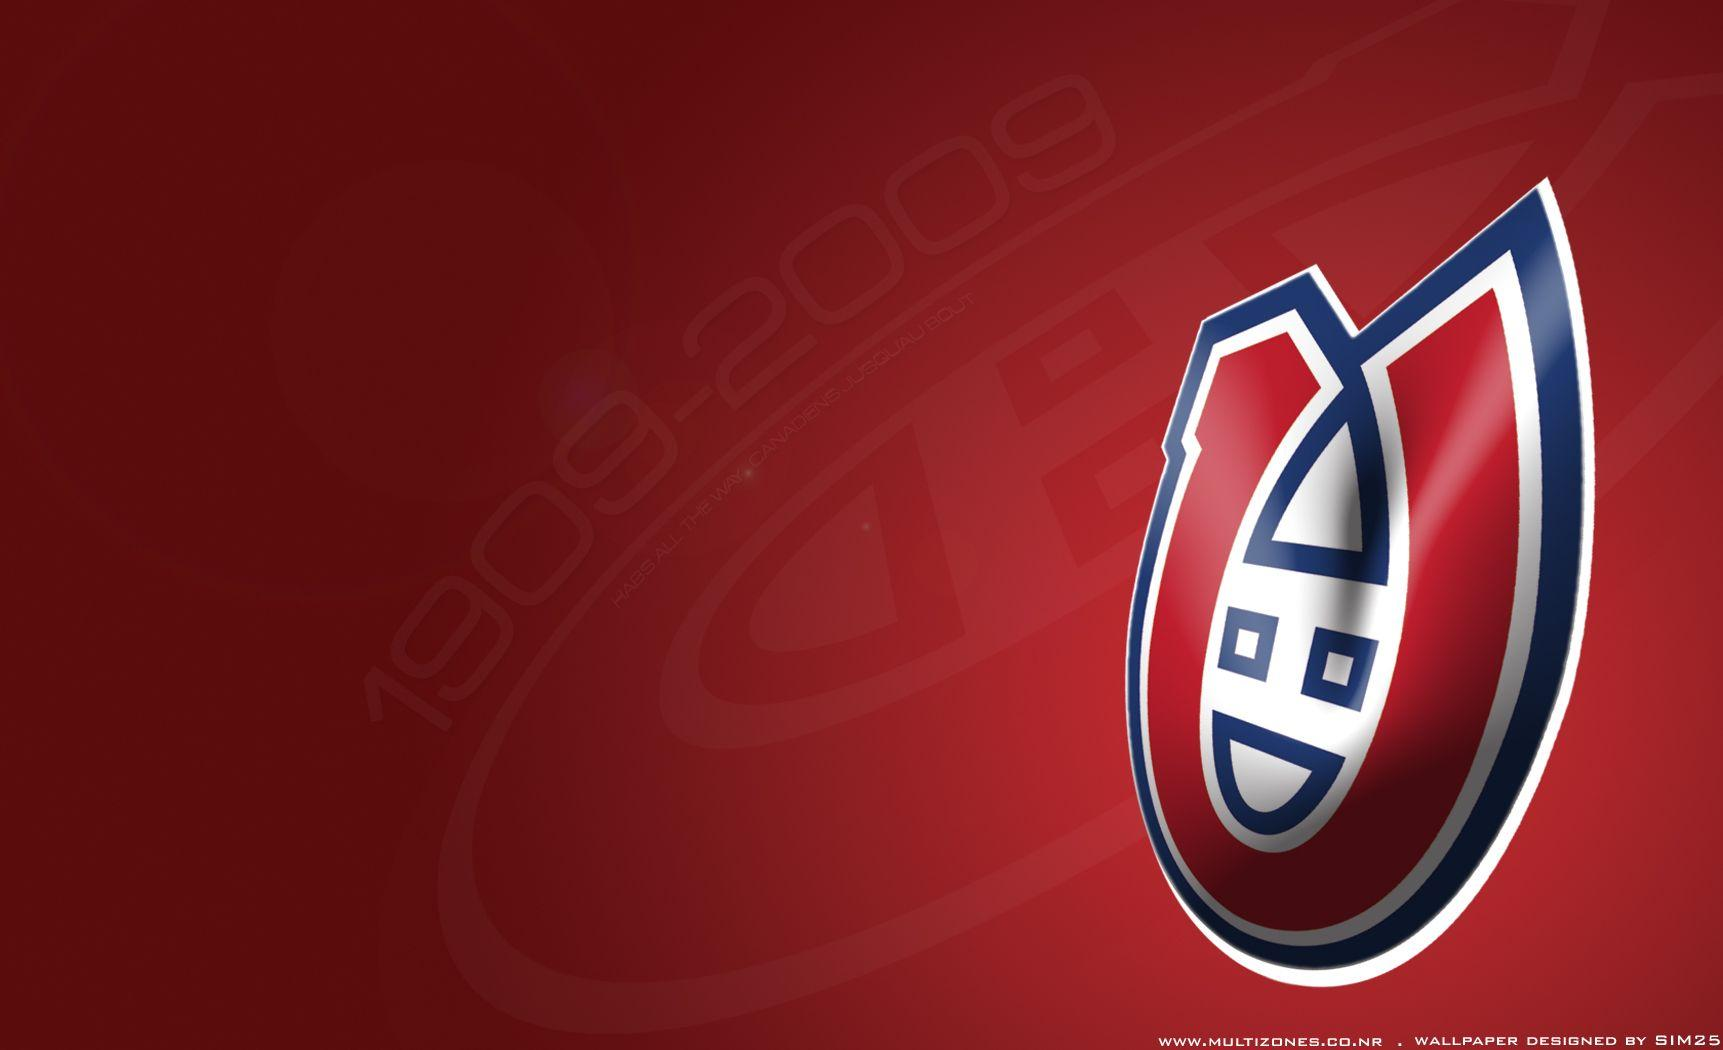 Carey price wallpapers montreal habs montreal hockey 9 html code - Montreal Canadiens Images Montreal Canadiens